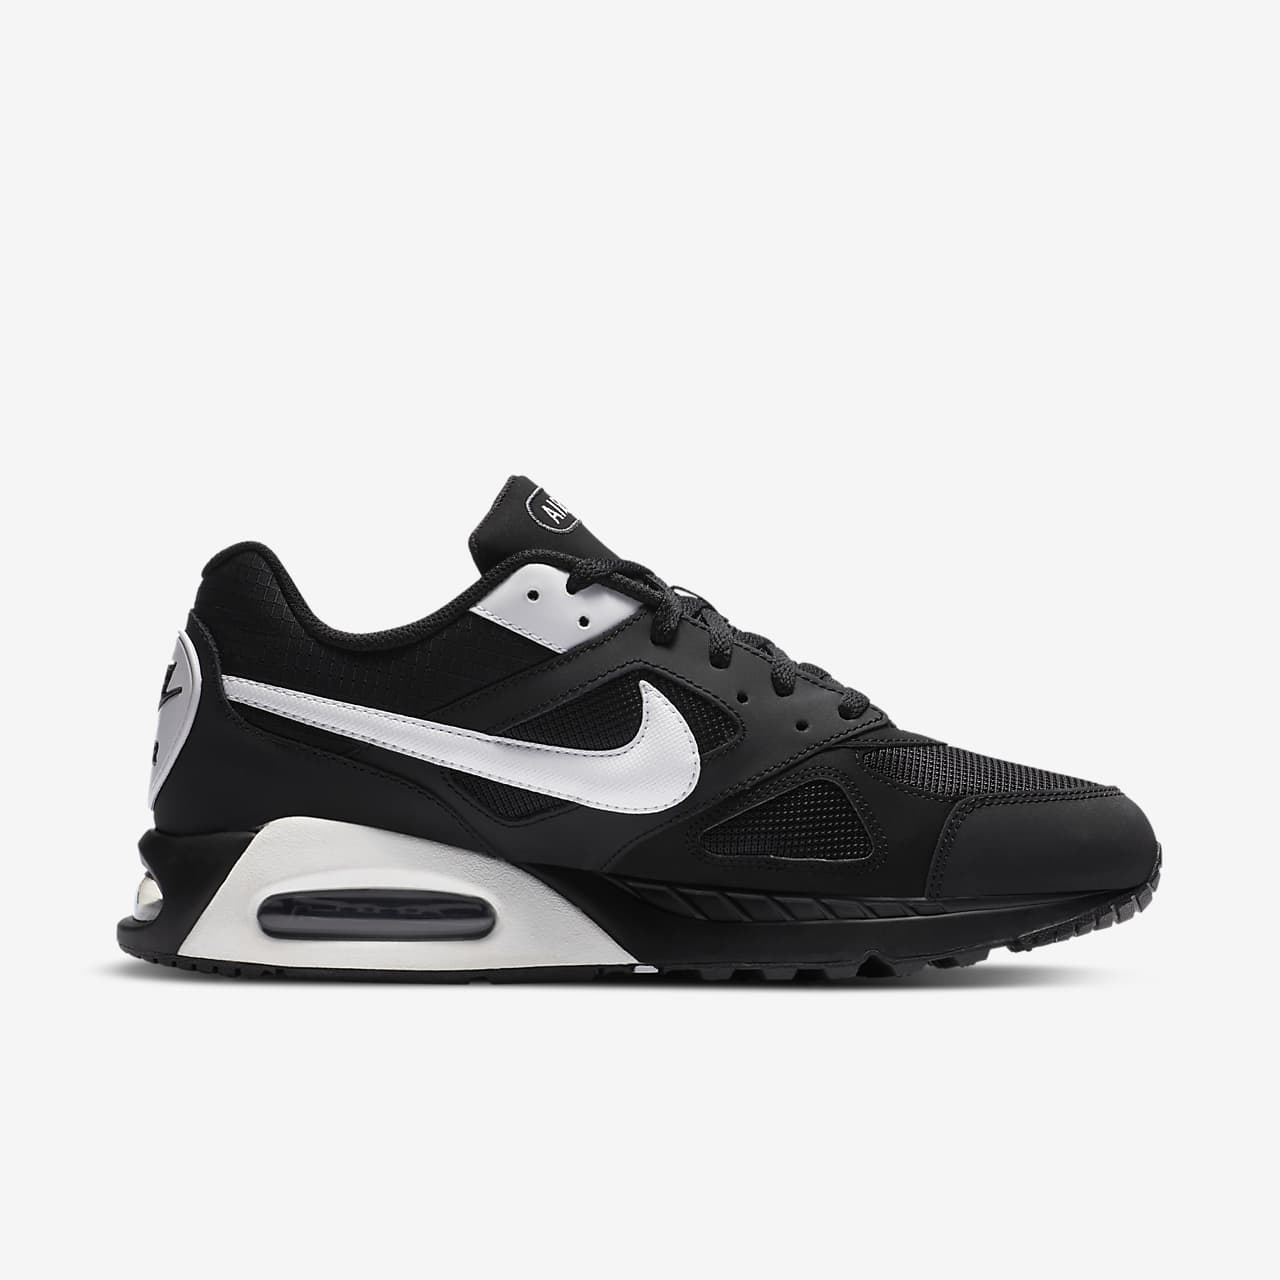 huge discount 7fb66 3c765 ... Nike Air Max IVO Men s Shoe